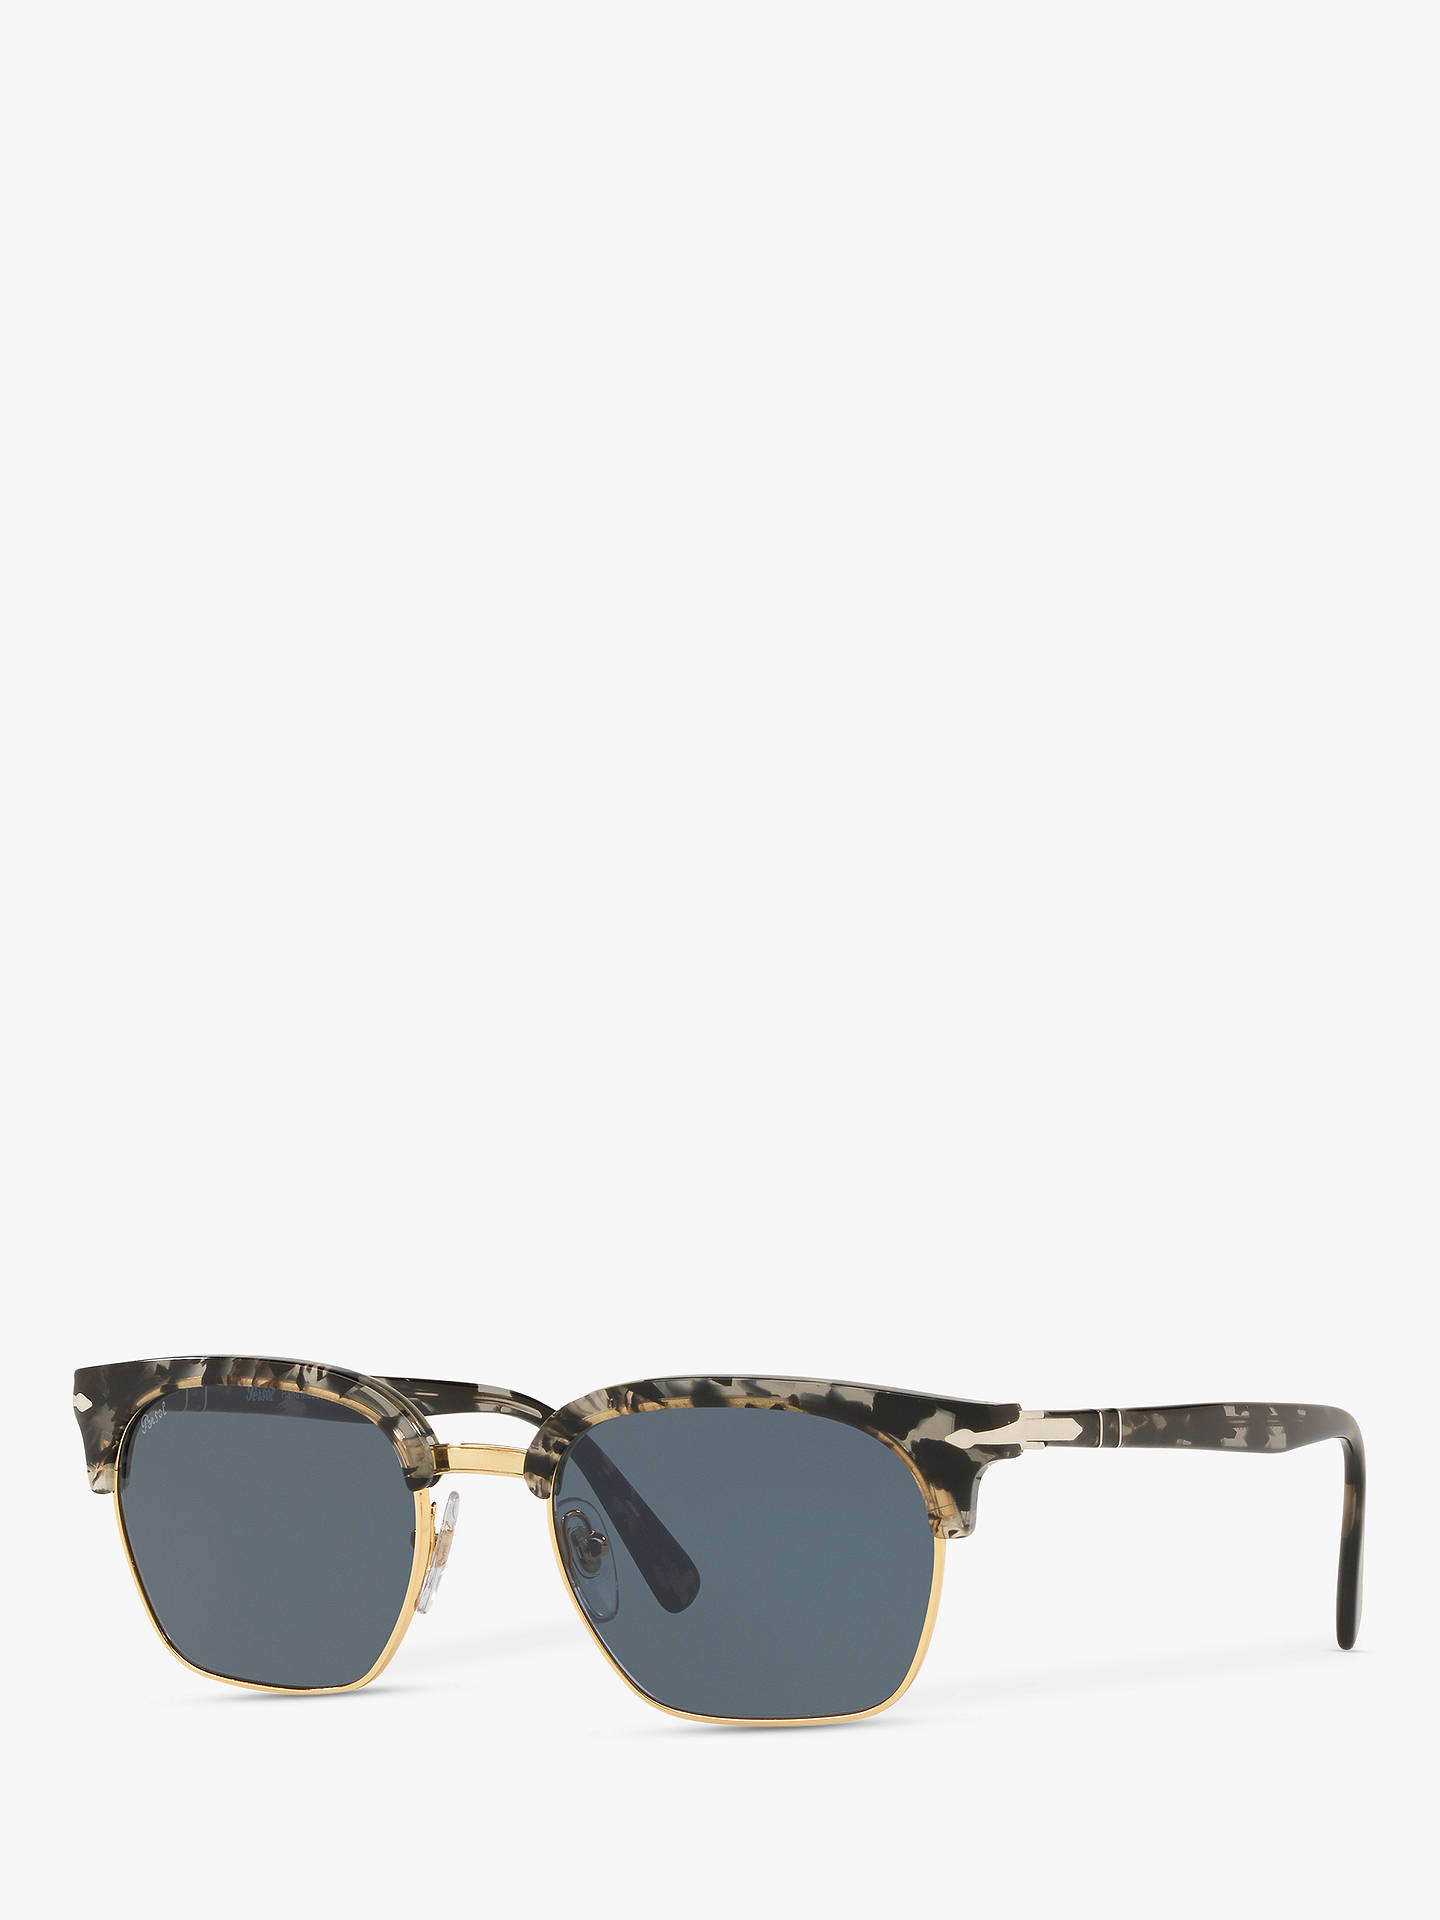 Buy Persol PO3199S Unisex Square Sunglasses, Tortoise Grey/Black Online at johnlewis.com